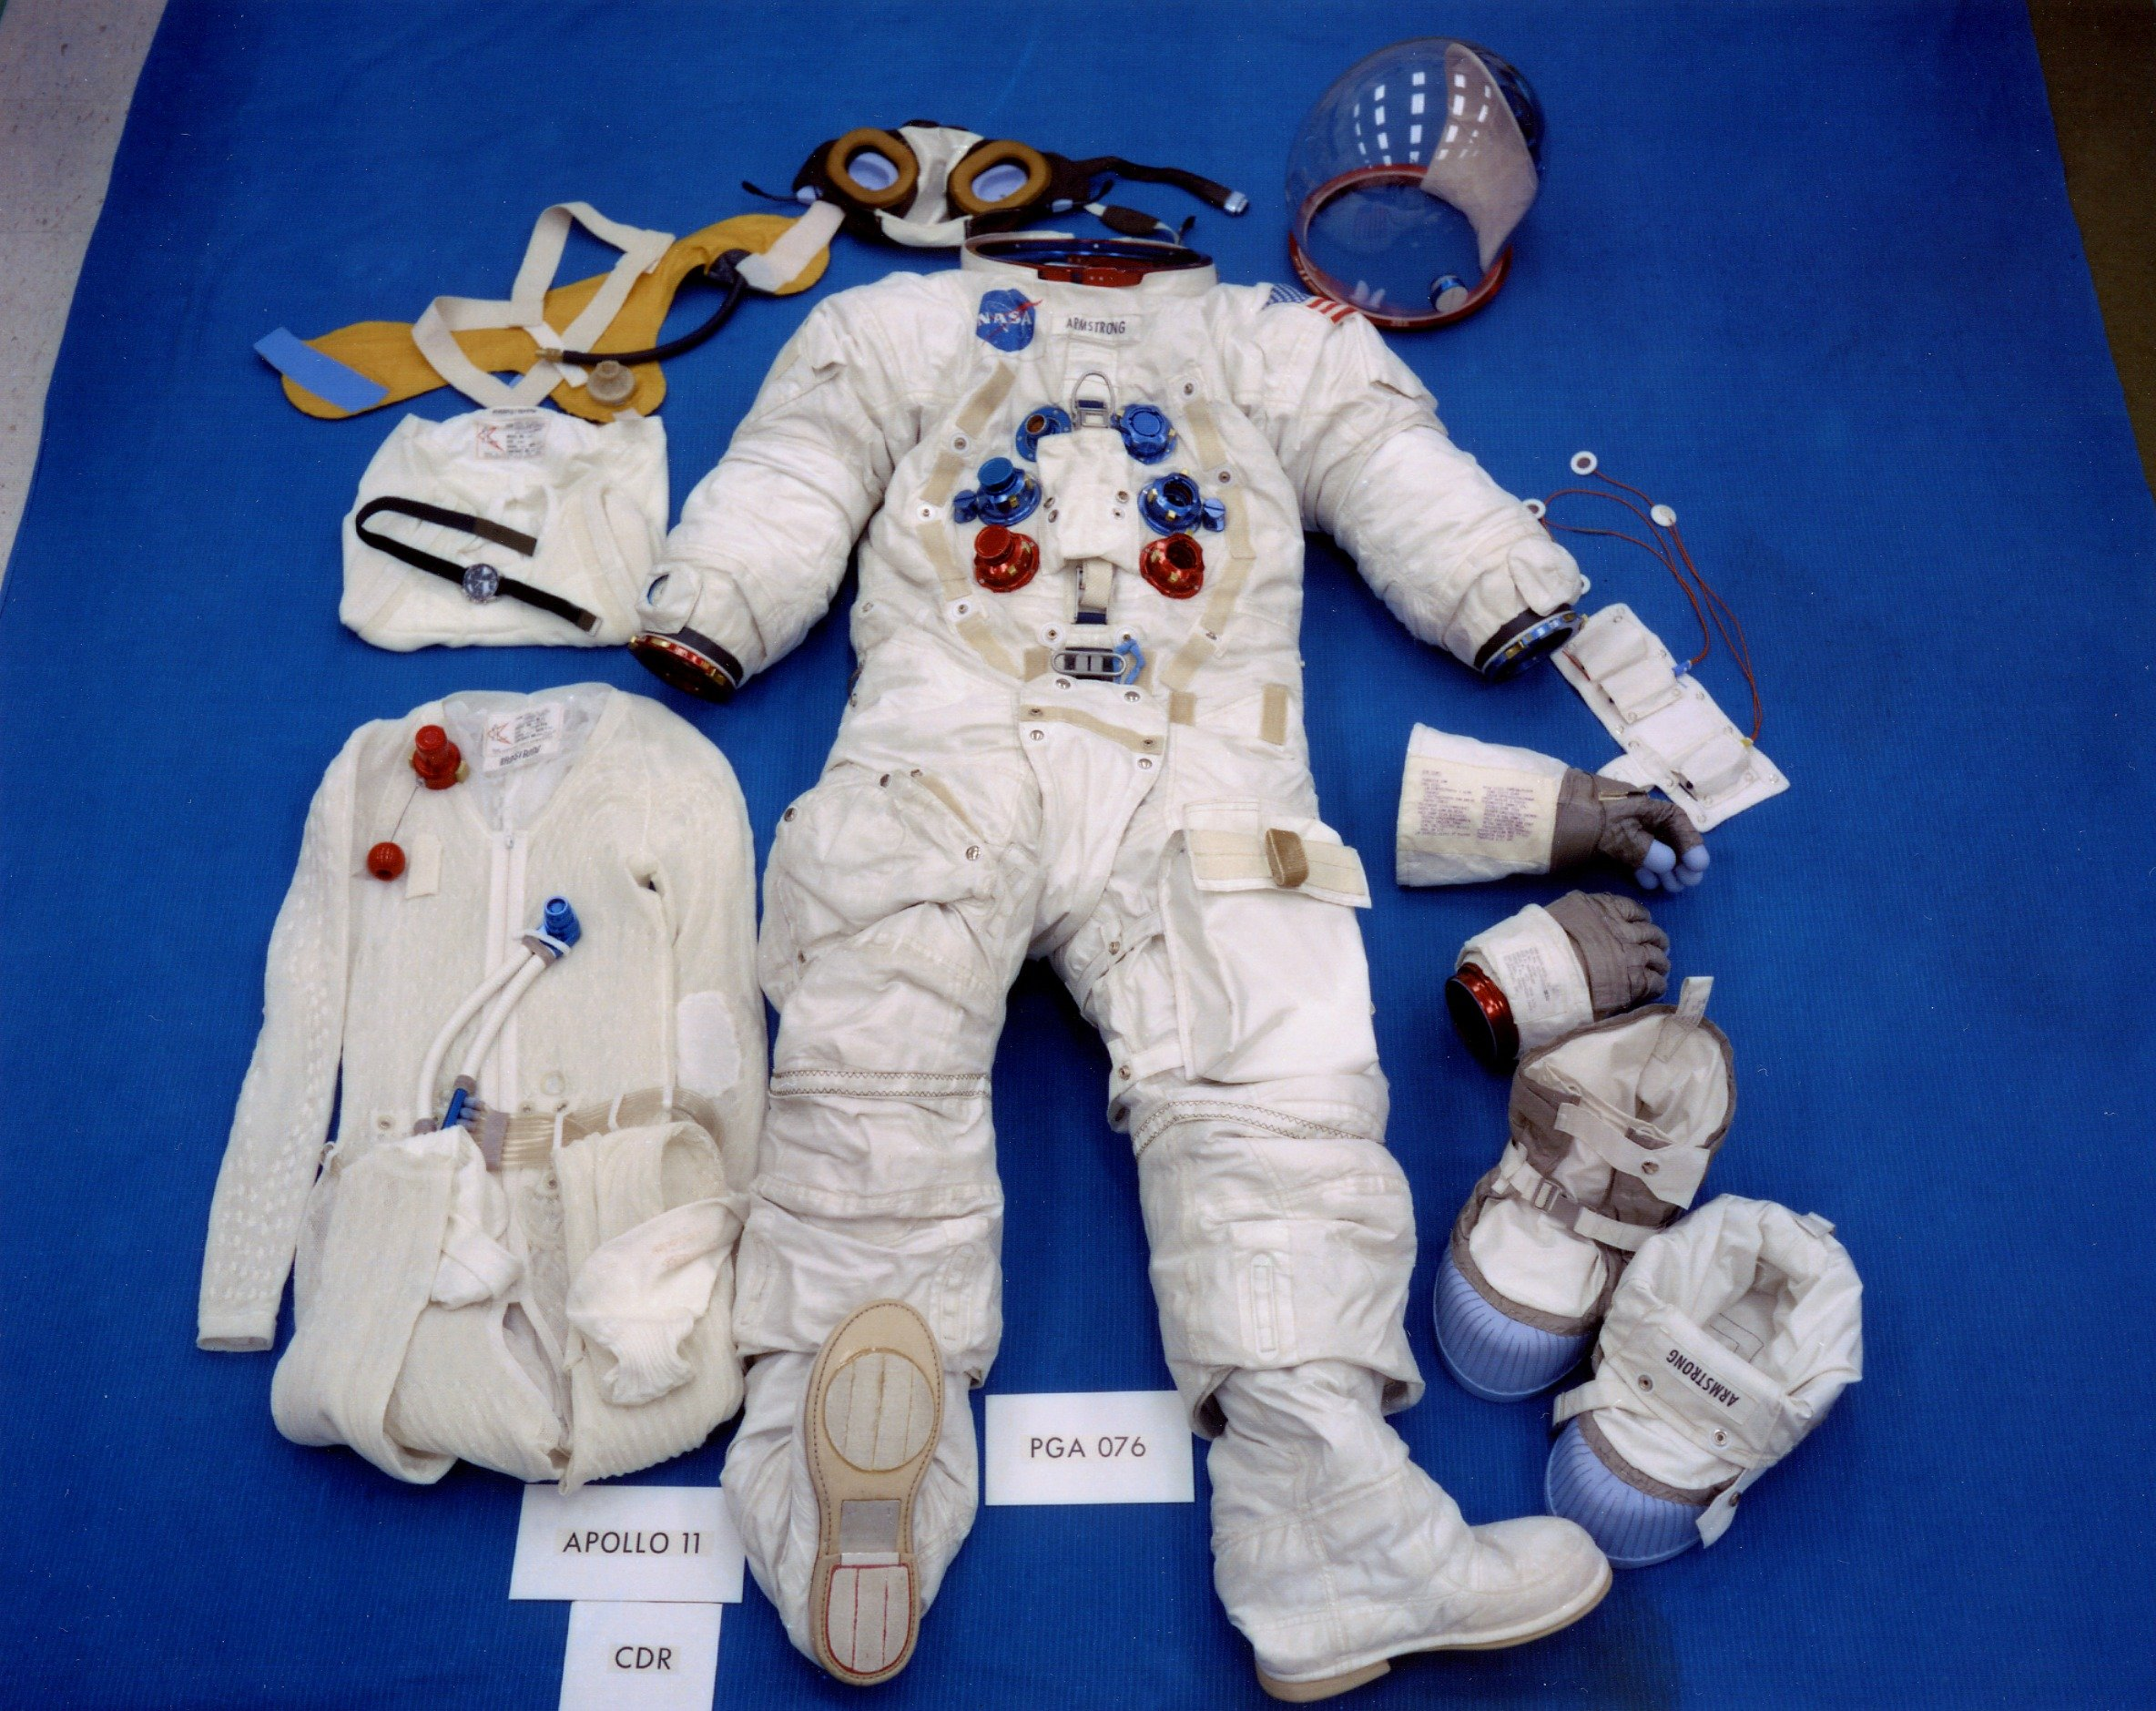 Spacesuit clipart neil armstrong A on make space space